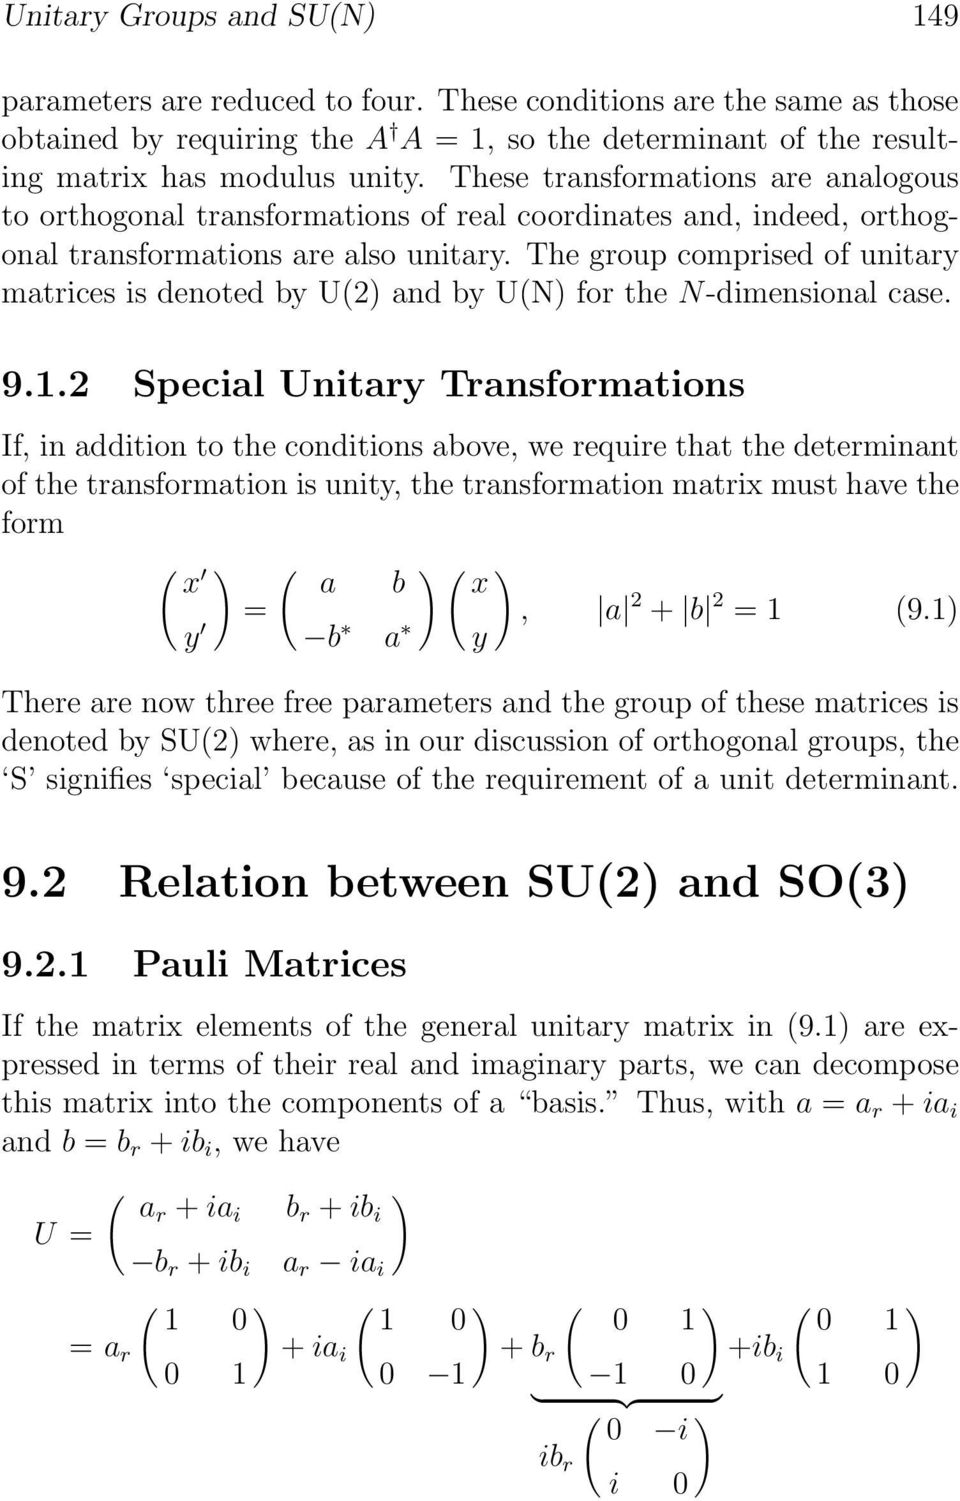 The group comprised of unitary matrices is denoted by U() and by U(N) for the N-dimensional case. 9.1.